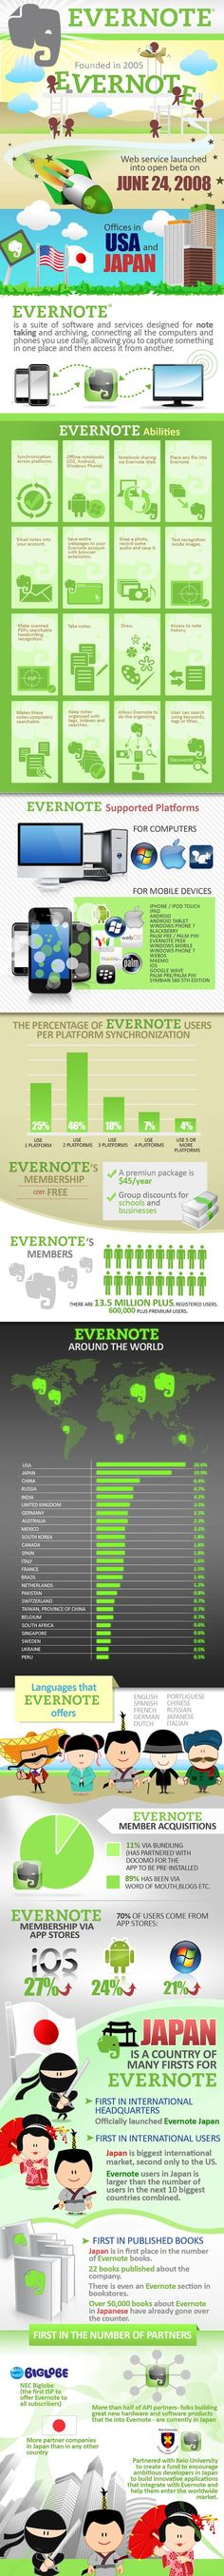 "All About Evernote.....wow-I had no idea it's been around as long as it has!  That's one of the reasons I chose it-it has a good history, has had a chance to work out any ""bugs"" in the program and is likely to last =)"